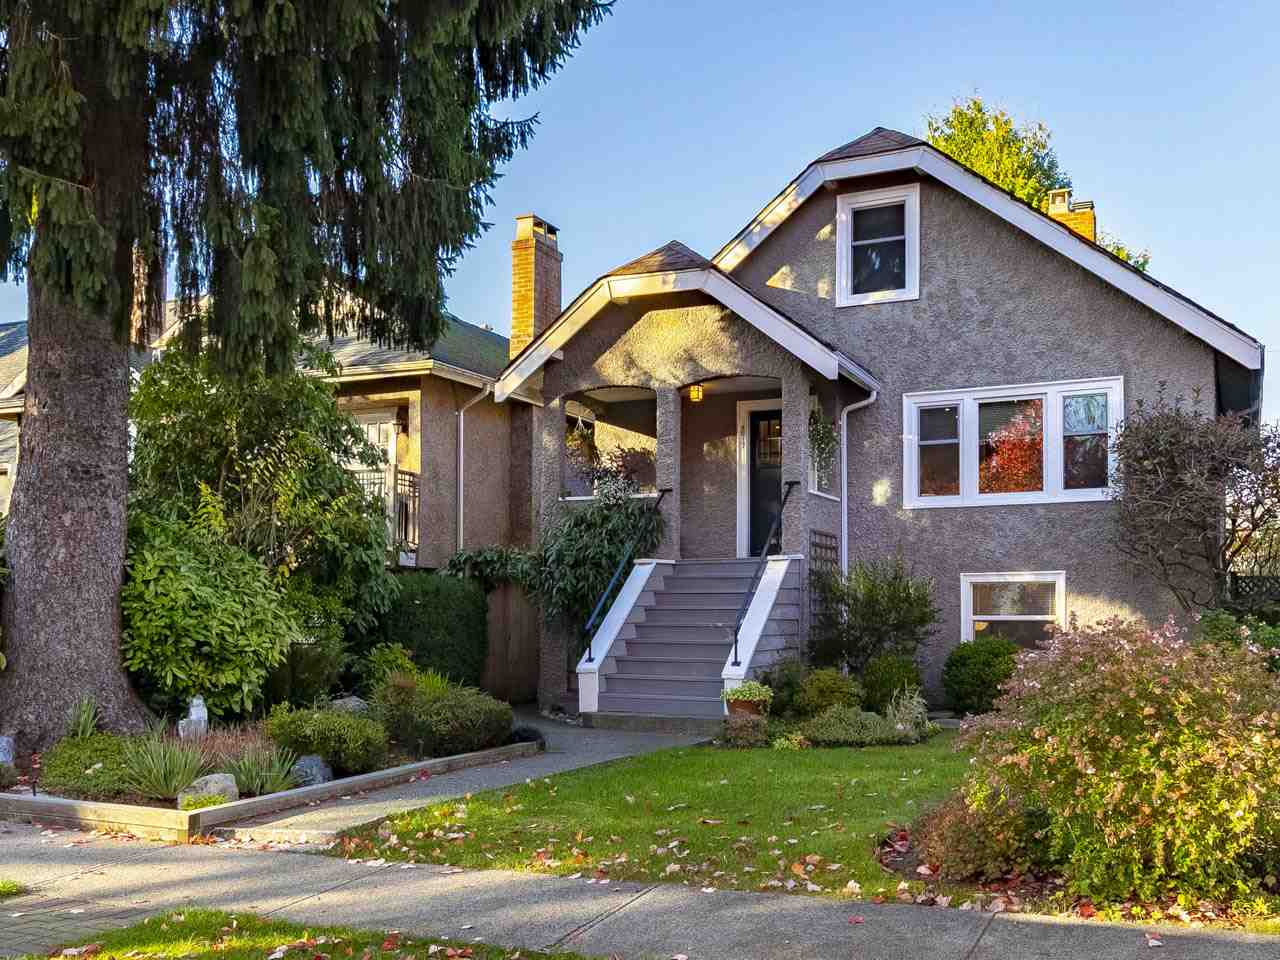 4517 W 14TH AVENUE - Point Grey - Vancouver